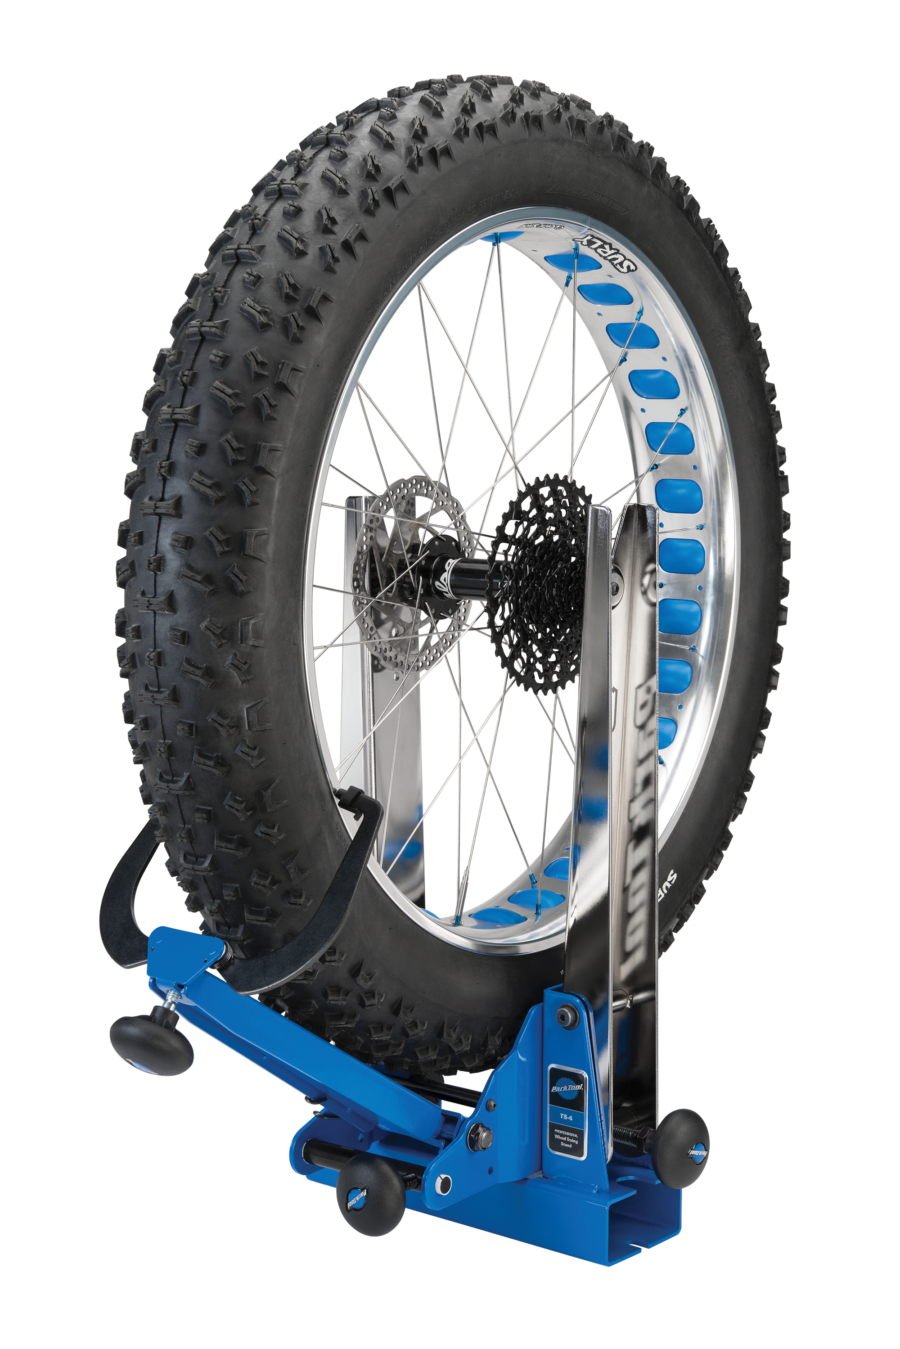 The Park Tool TS-4, Professional Wheel Truing Stand holding fat tire, enlarged